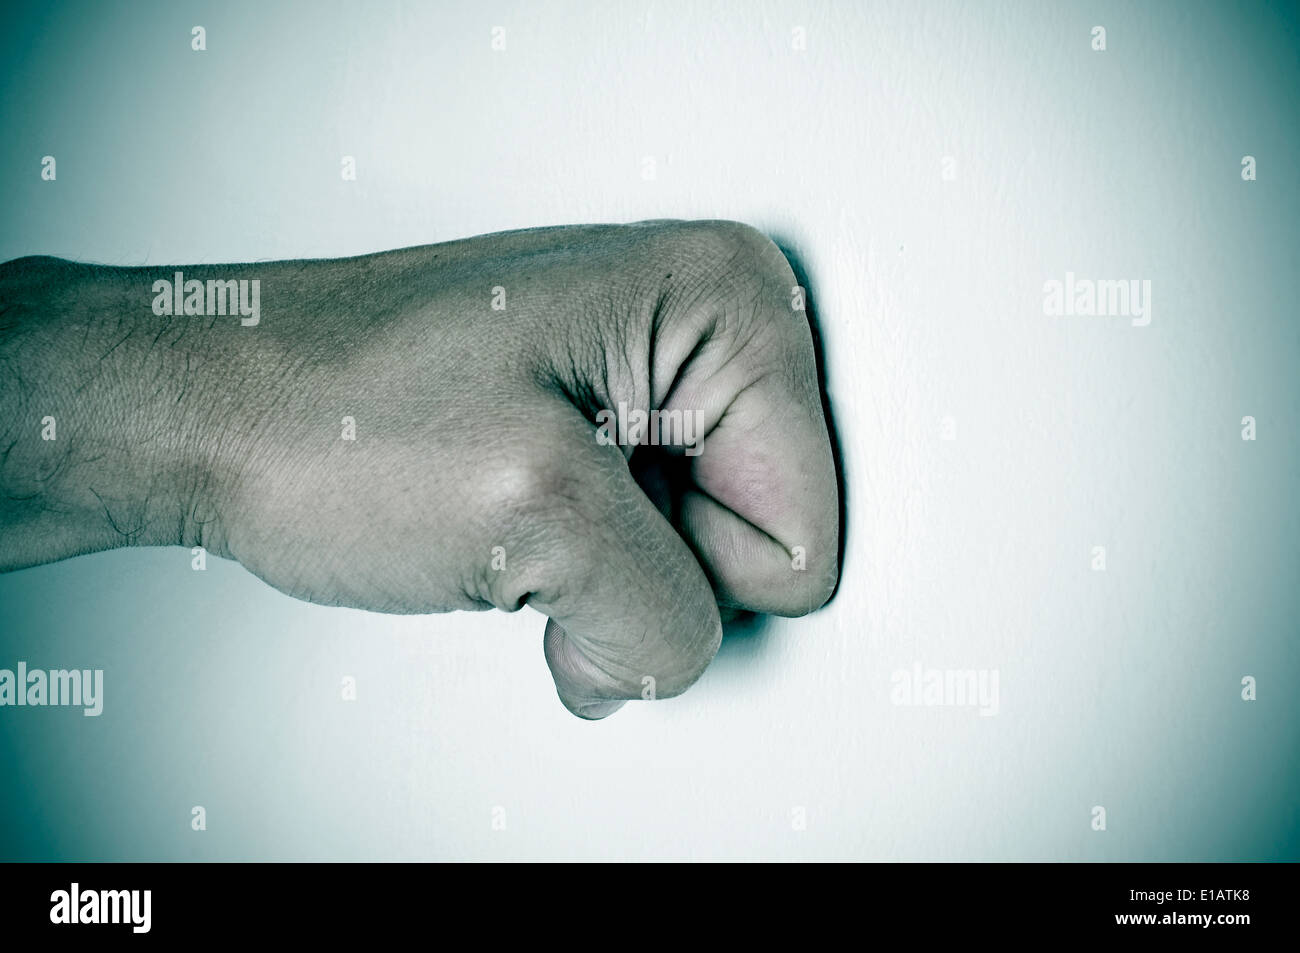 man fist punching a white surface - Stock Image